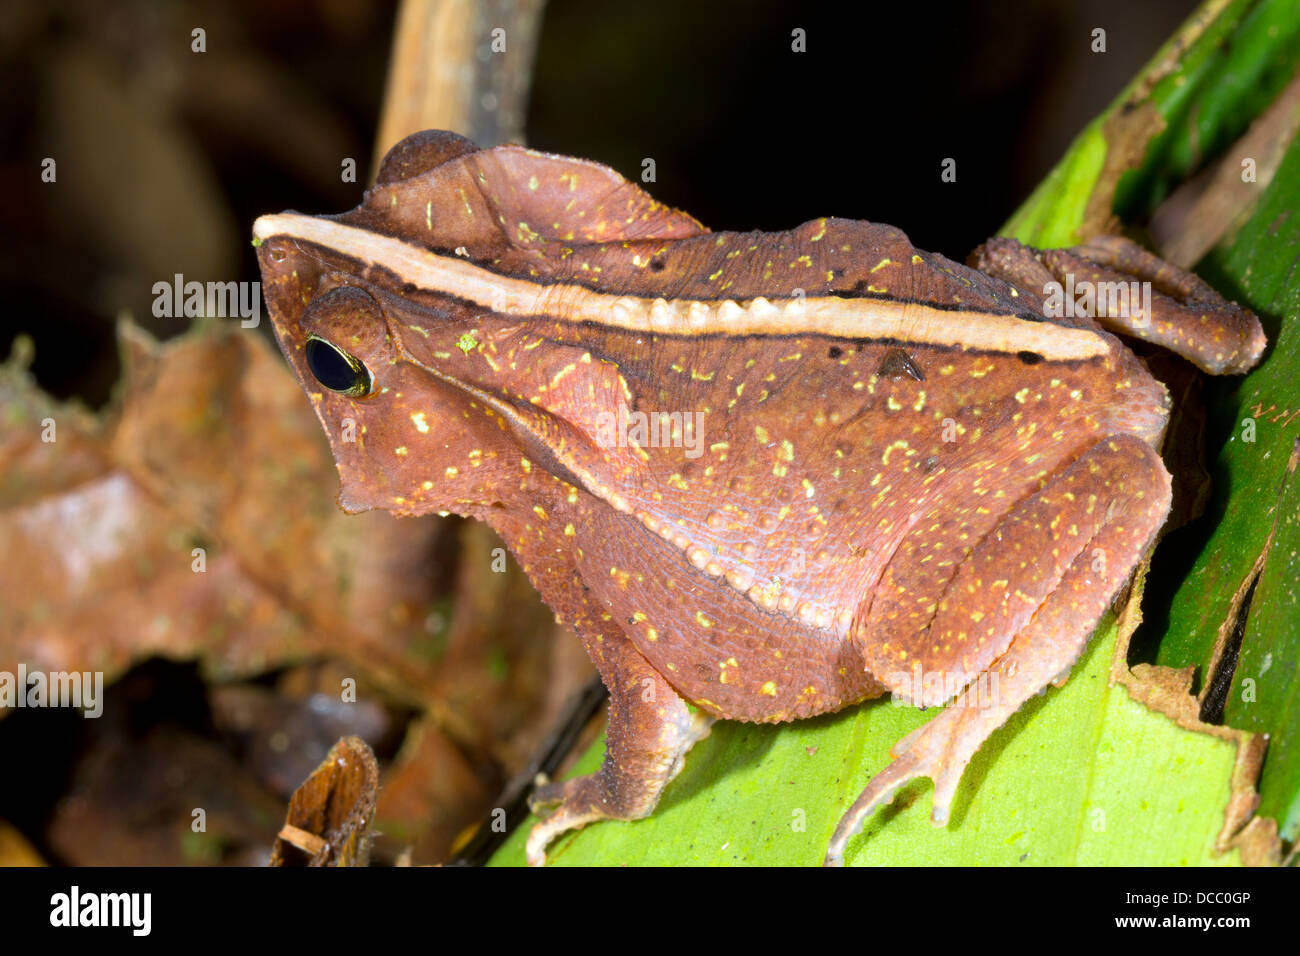 Crested Forest Toad (Rhinella margaritifer), ecuador - Stock Image